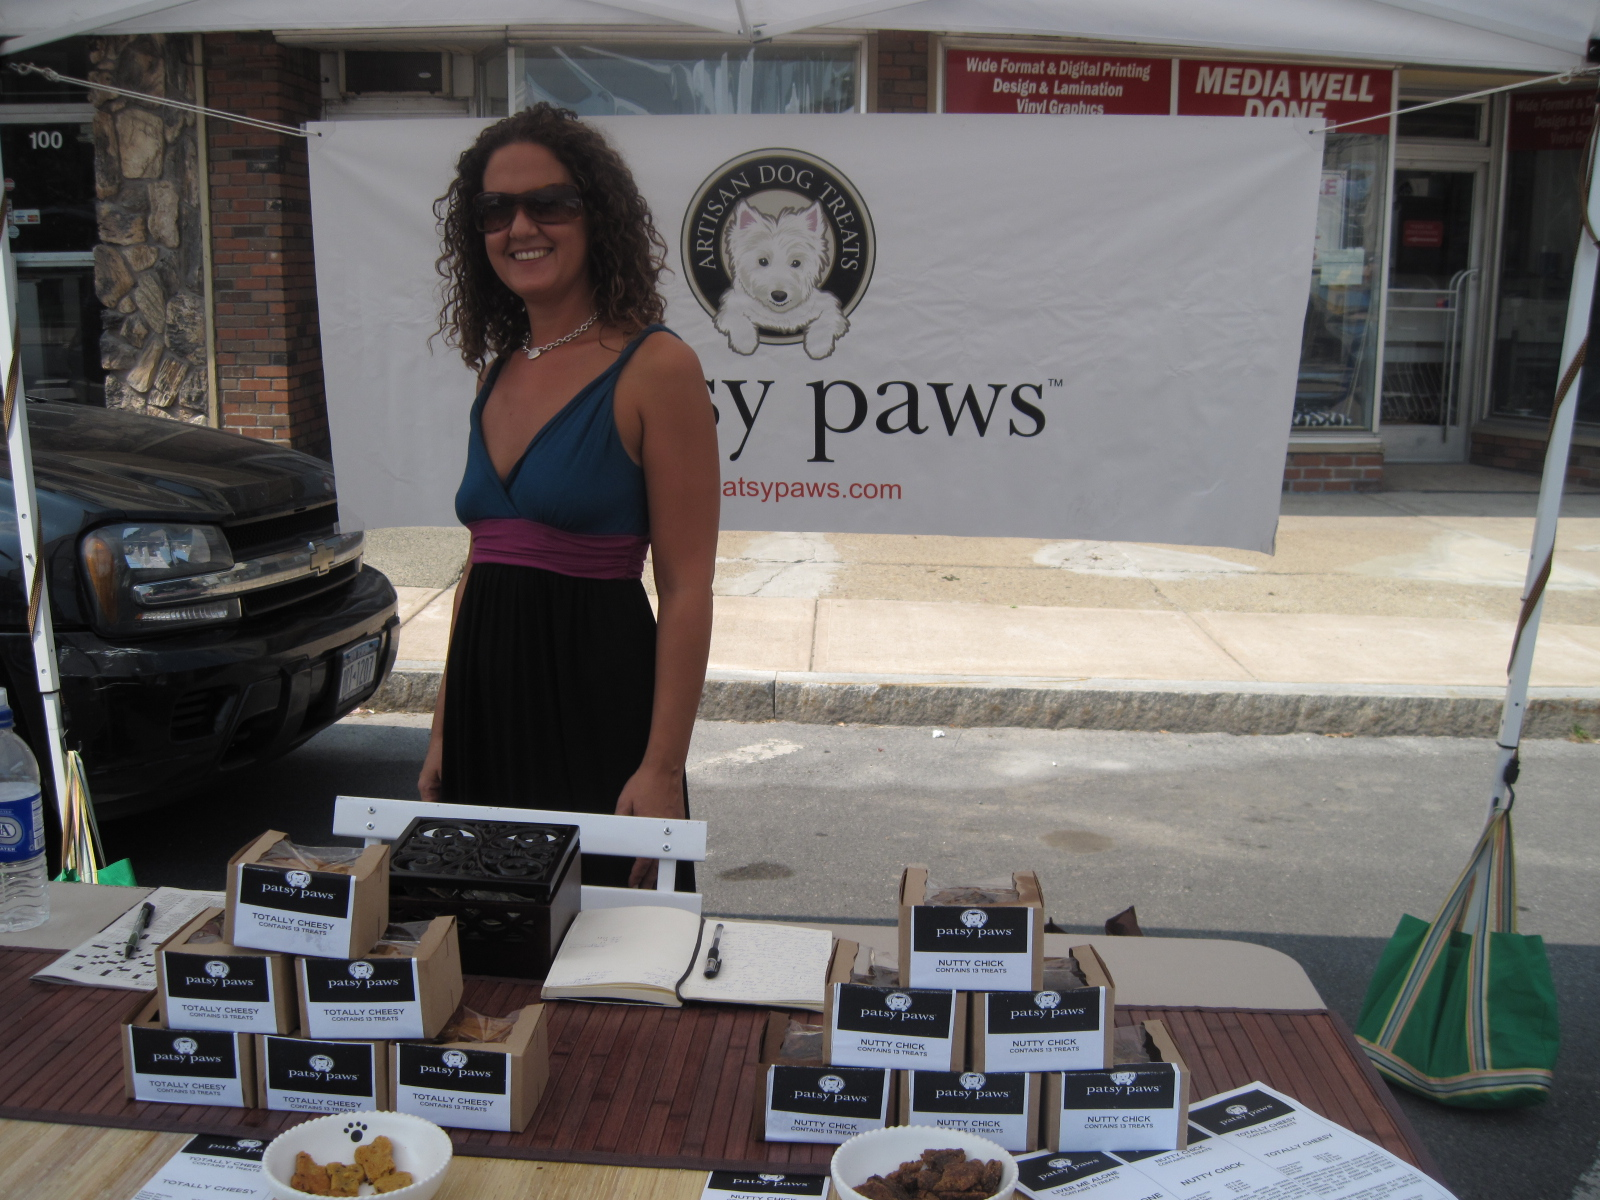 Patsy Paws owner Elizabeth poses with her delicious pet treats!